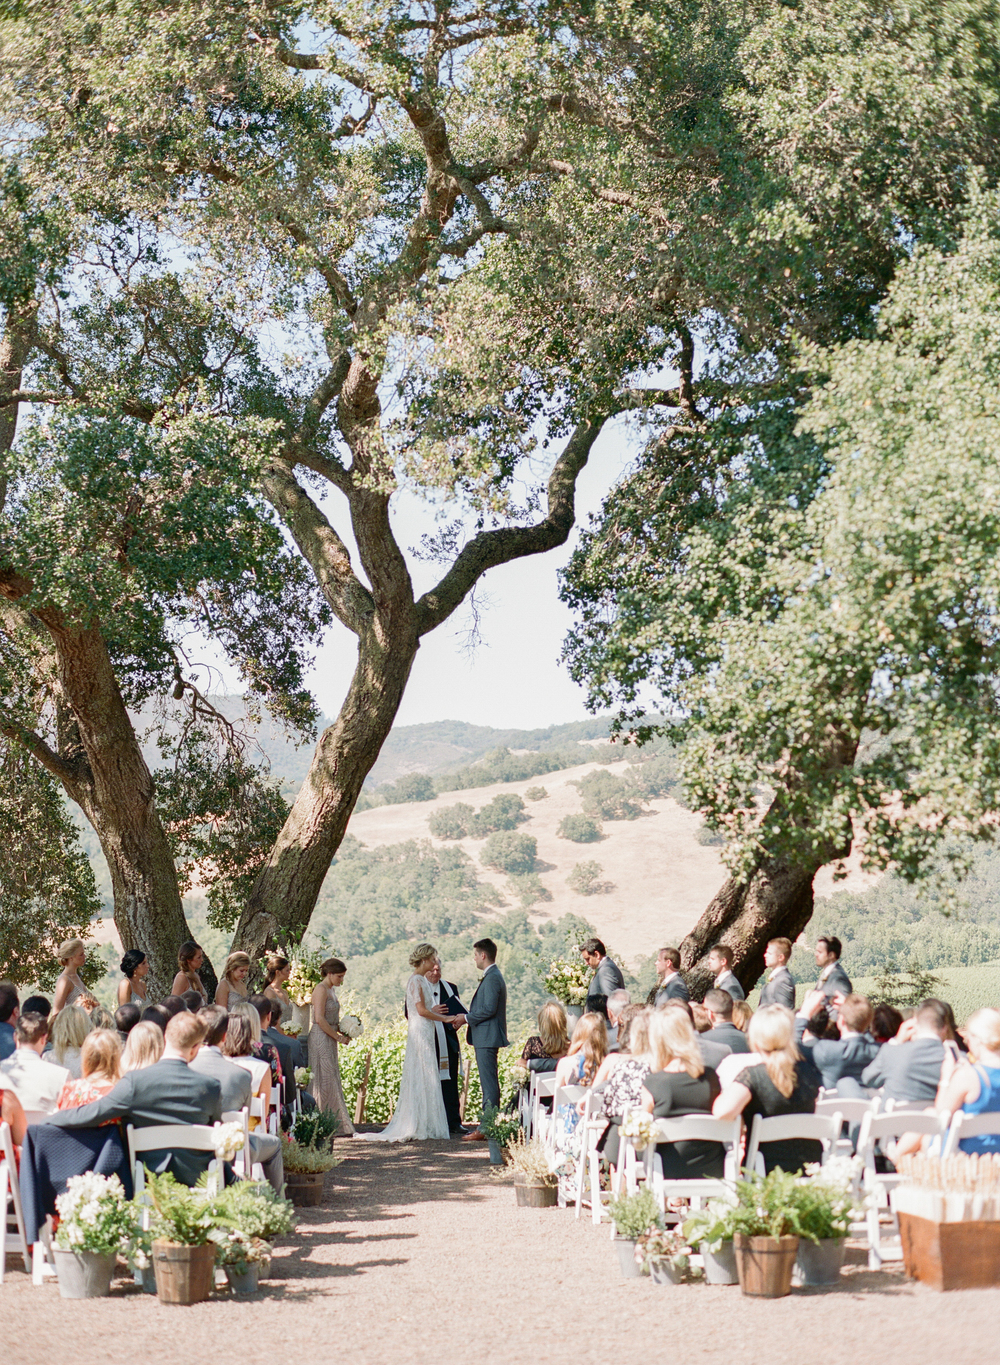 Sylvie-Gil-film-destination-photography-Kunde-winery-Napa-Valley-elegant-shabby-chic-ceremony-vows-oak-trees